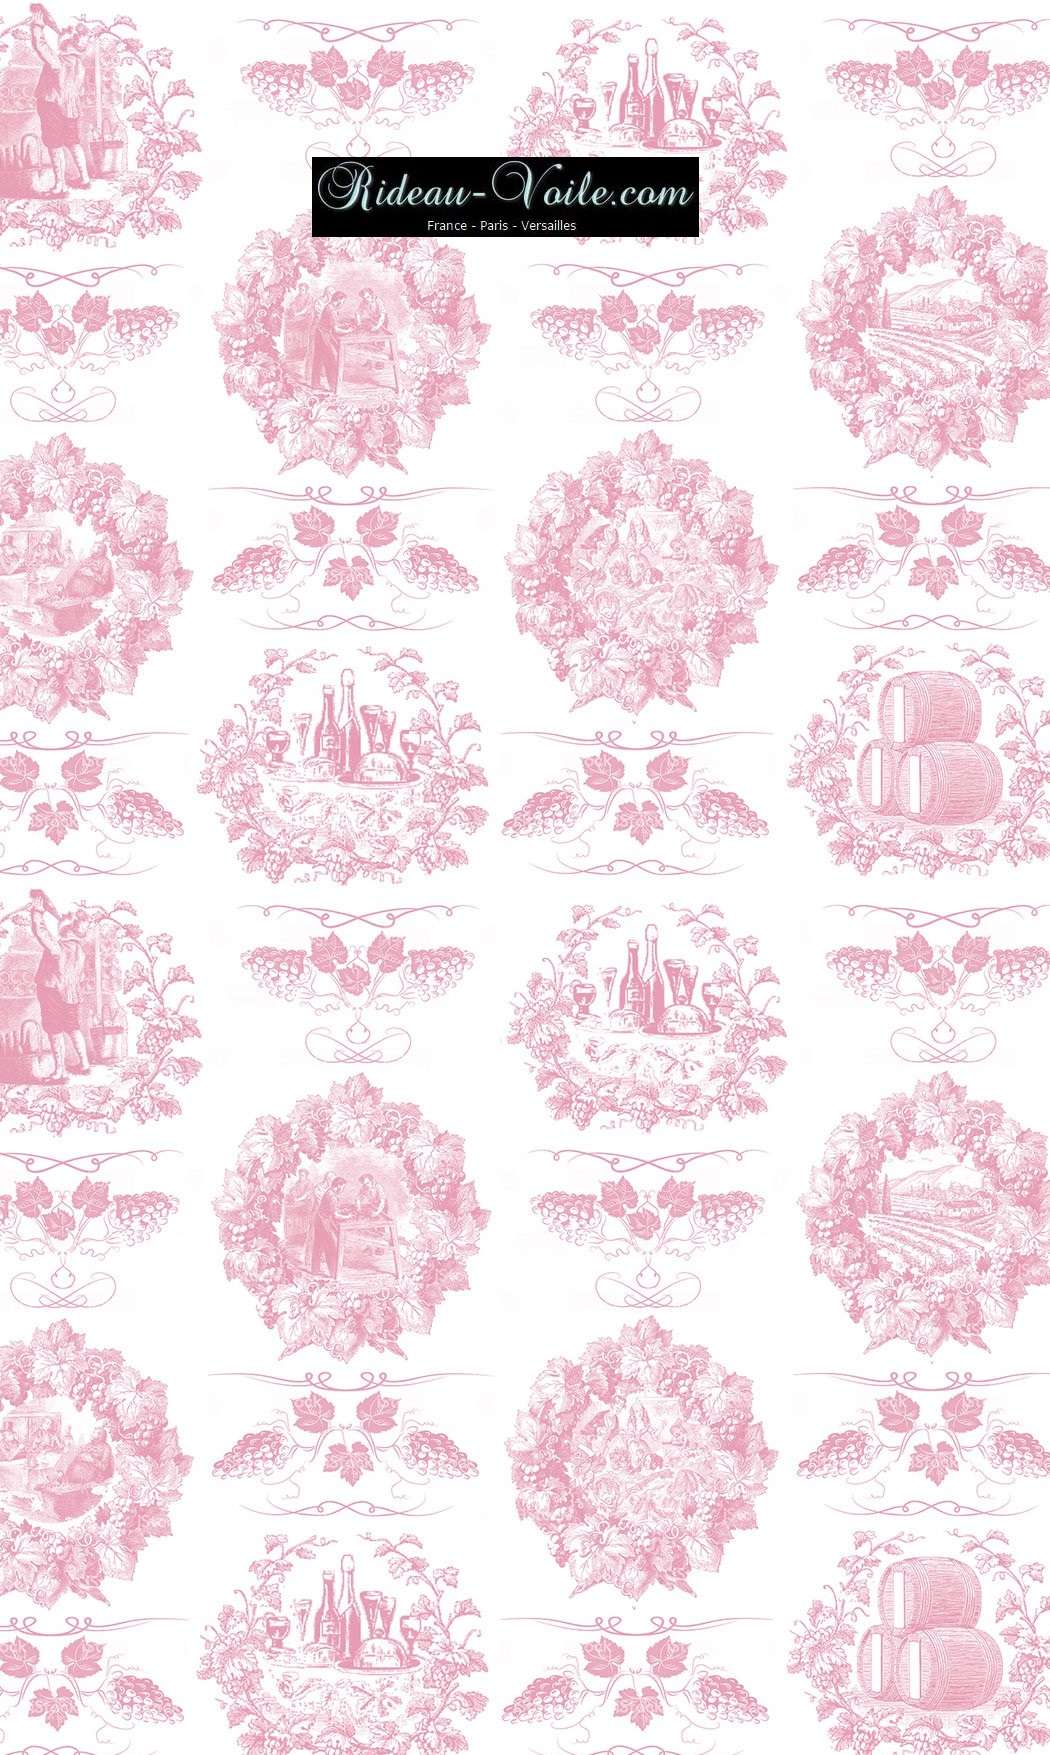 Toile de jouy tissu motif imprimé ameublement décoration tapisserie linge de maison housse coussin couette luxe lit fabric pattern printed home furnishing decoration tapestry linens cover cushion quilt luxury upholstery rose pink